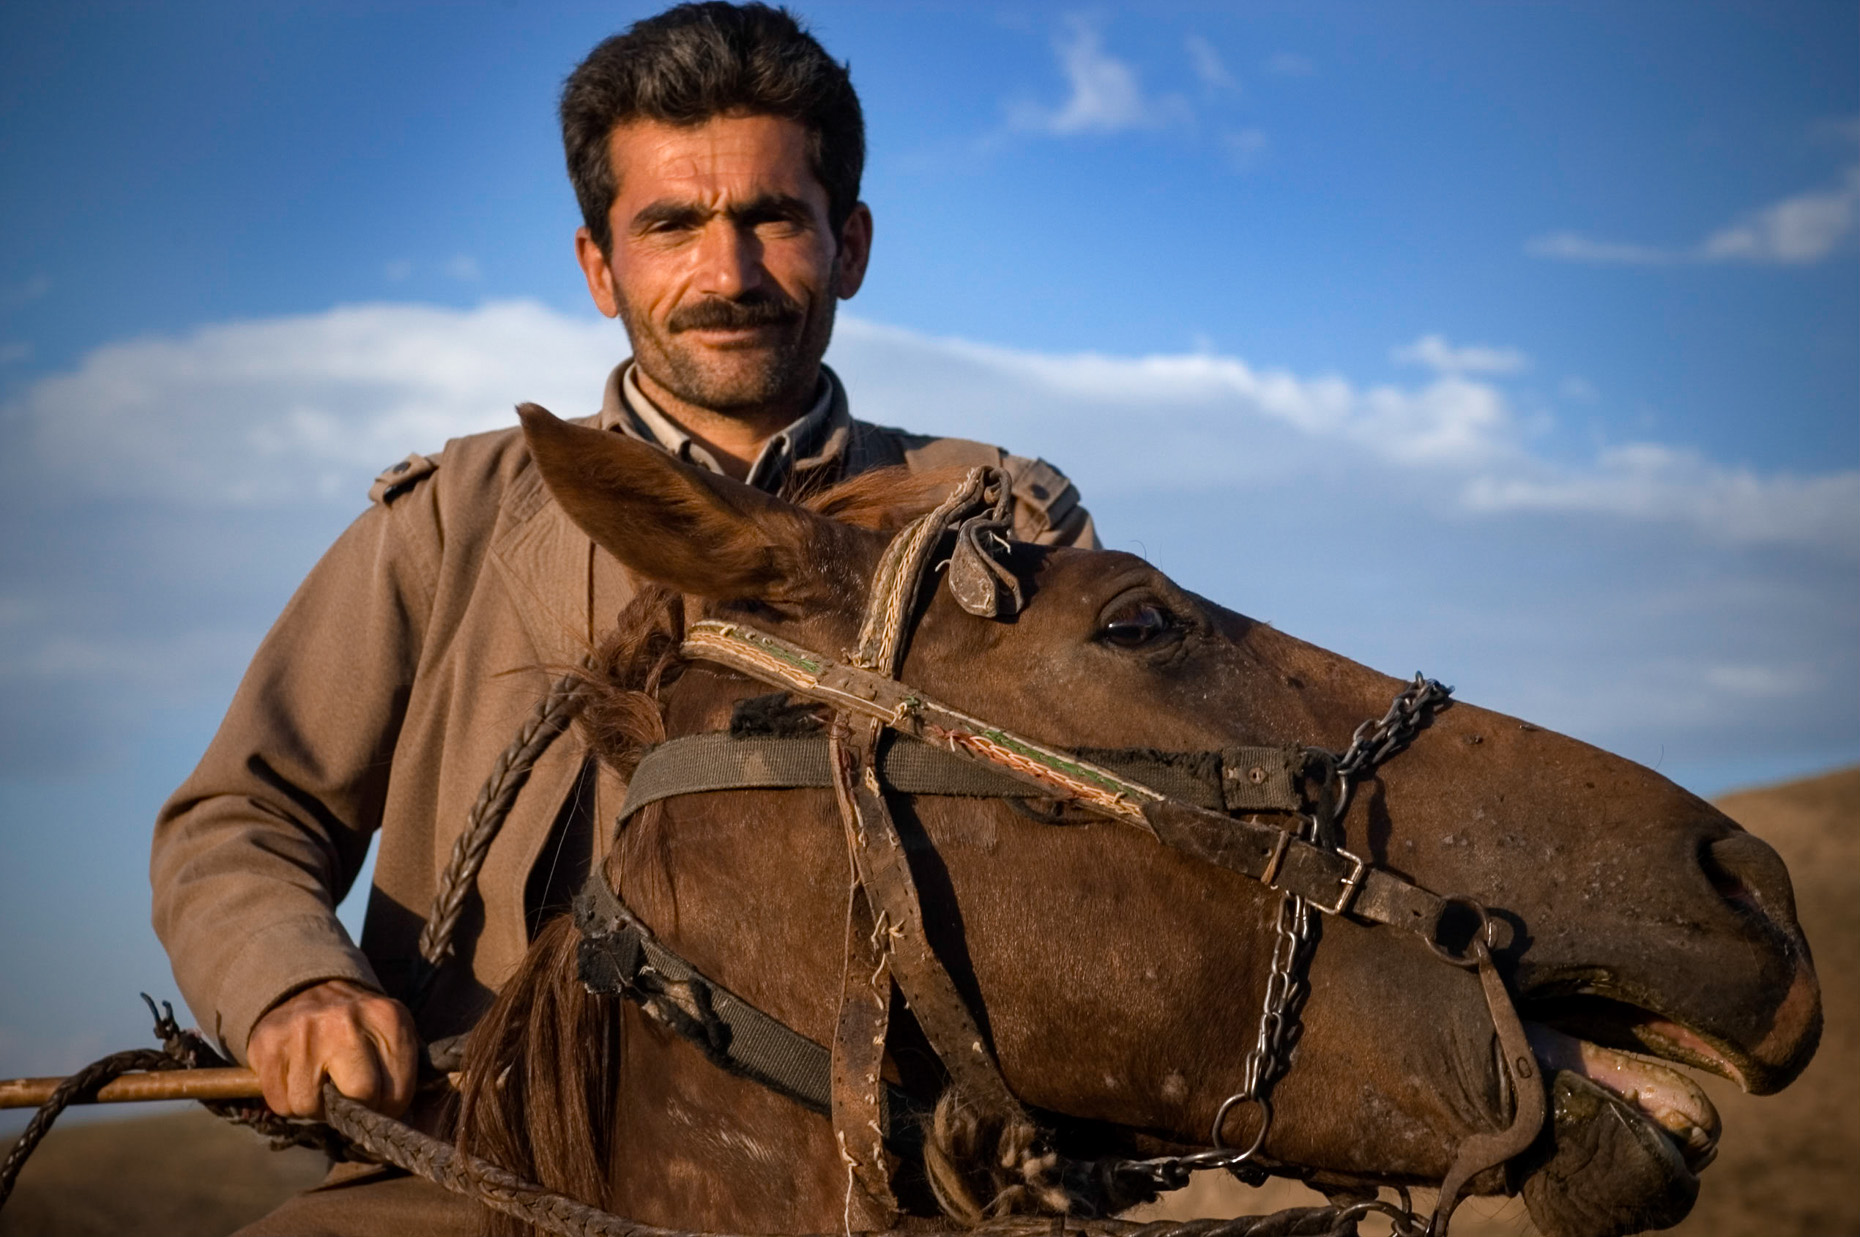 Environmental portrait of Kurdish Peshmurga guard on horseback, near mountain village, Turkey.